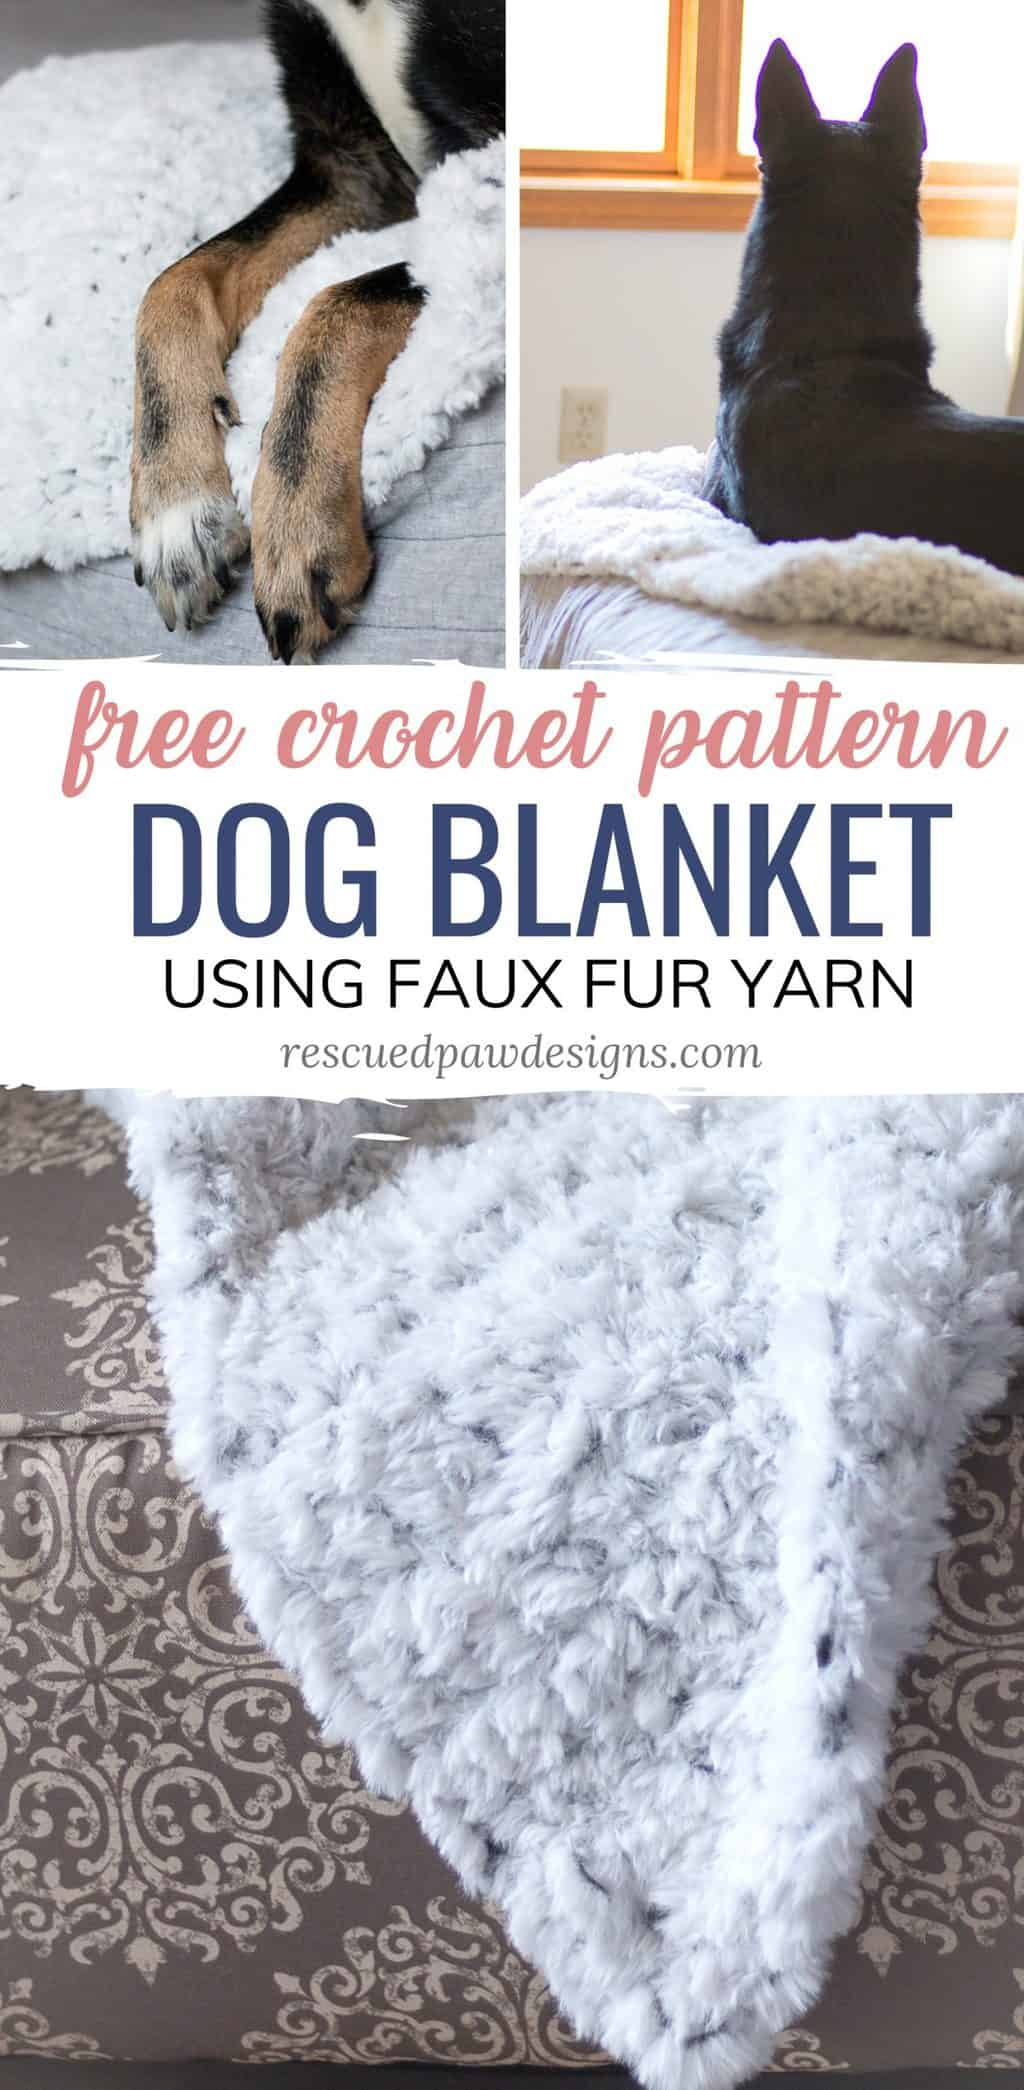 Faux Fur Crochet Blanket Pattern for Dogs